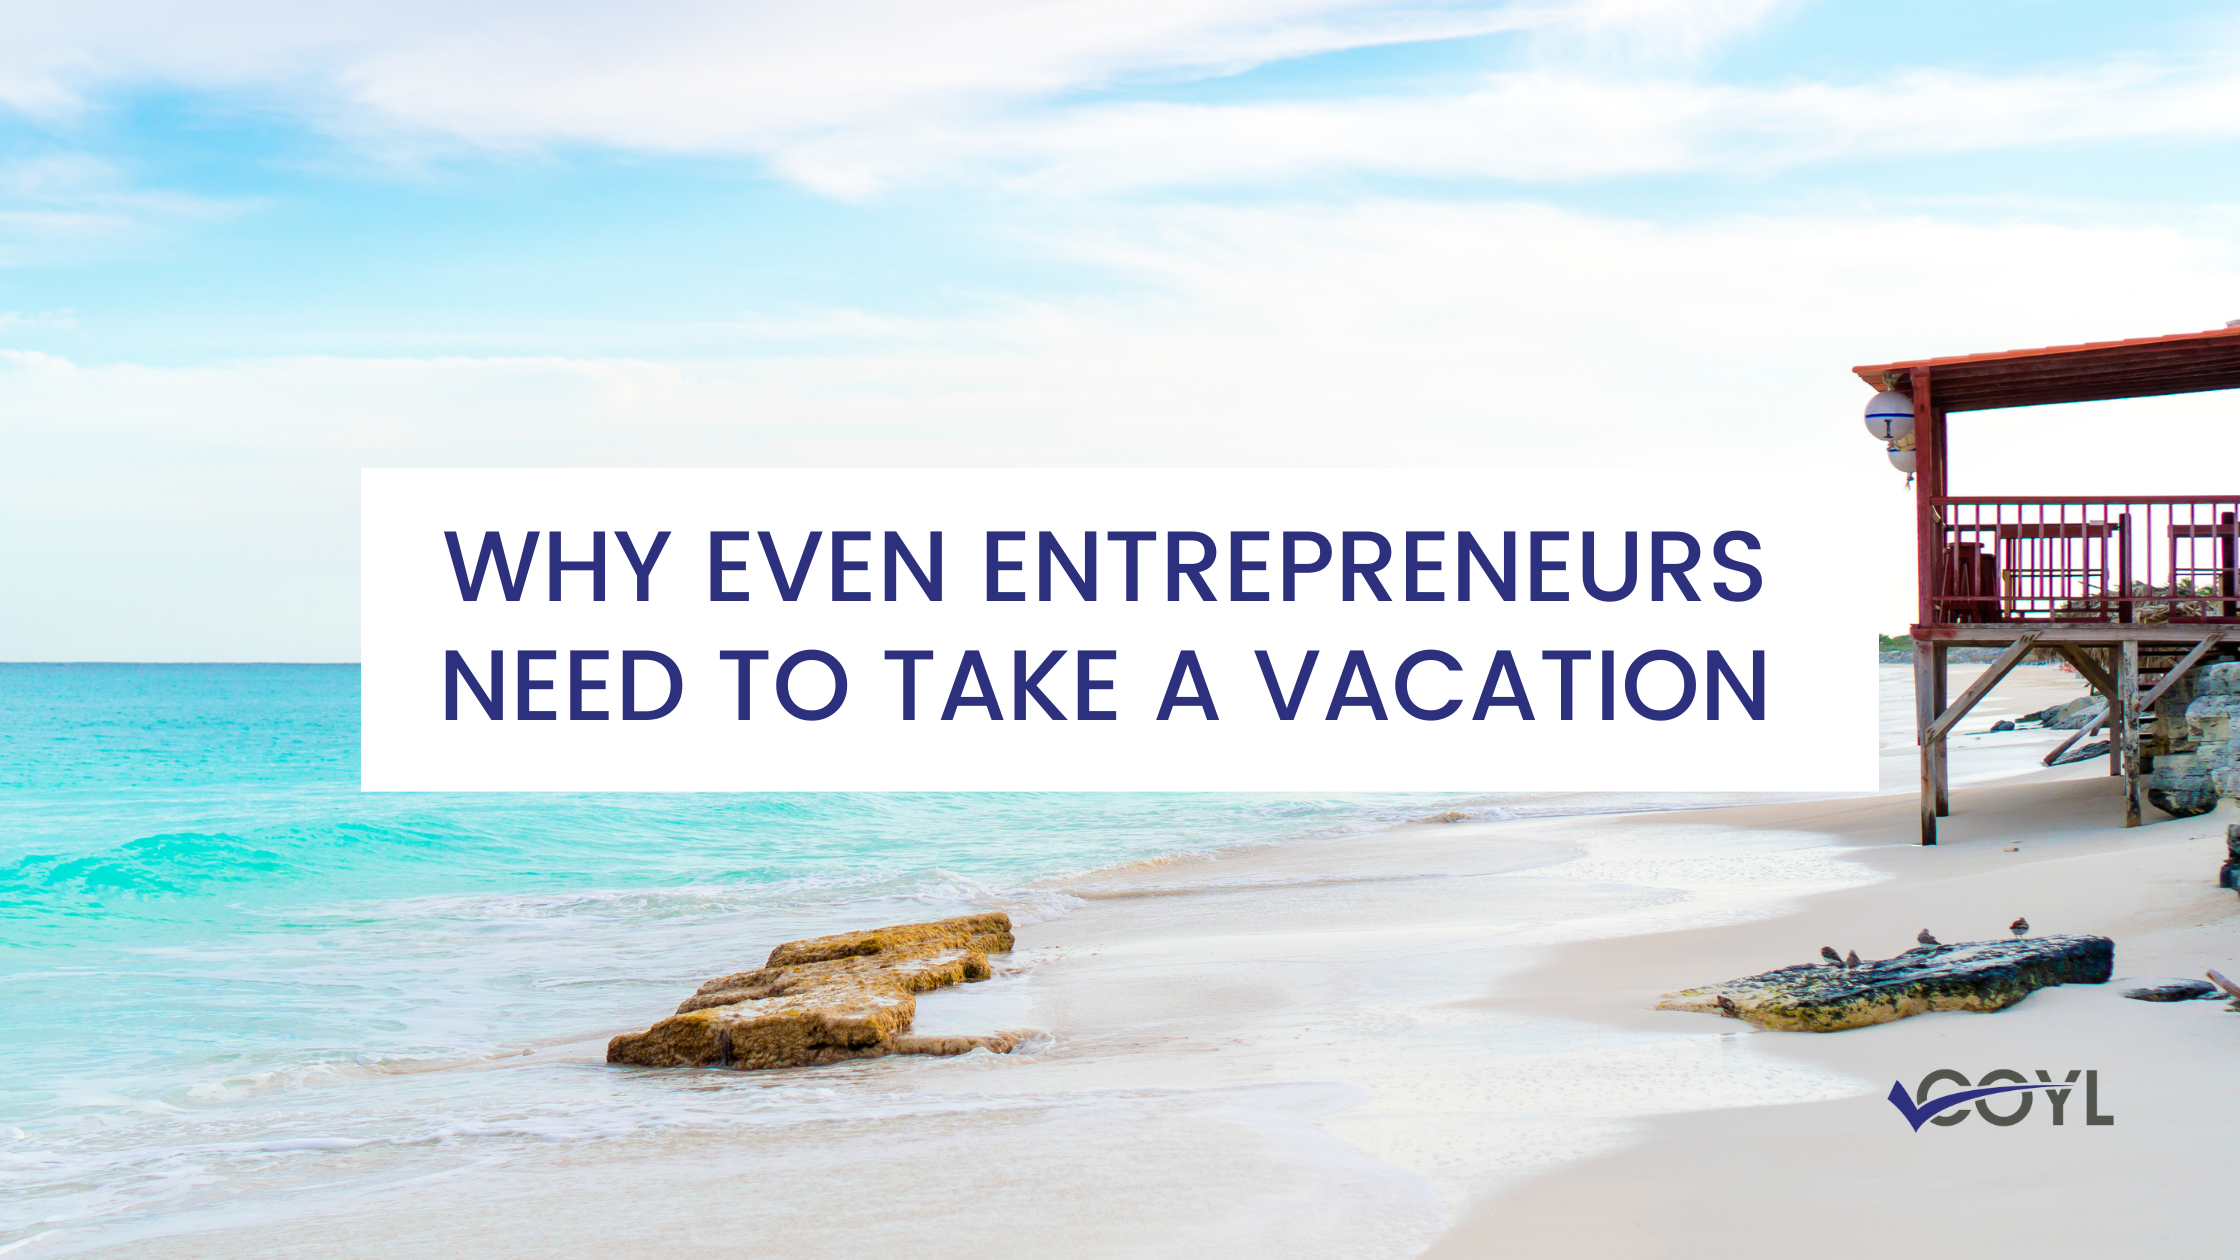 Entrepreneurs Need to Take a Vacation